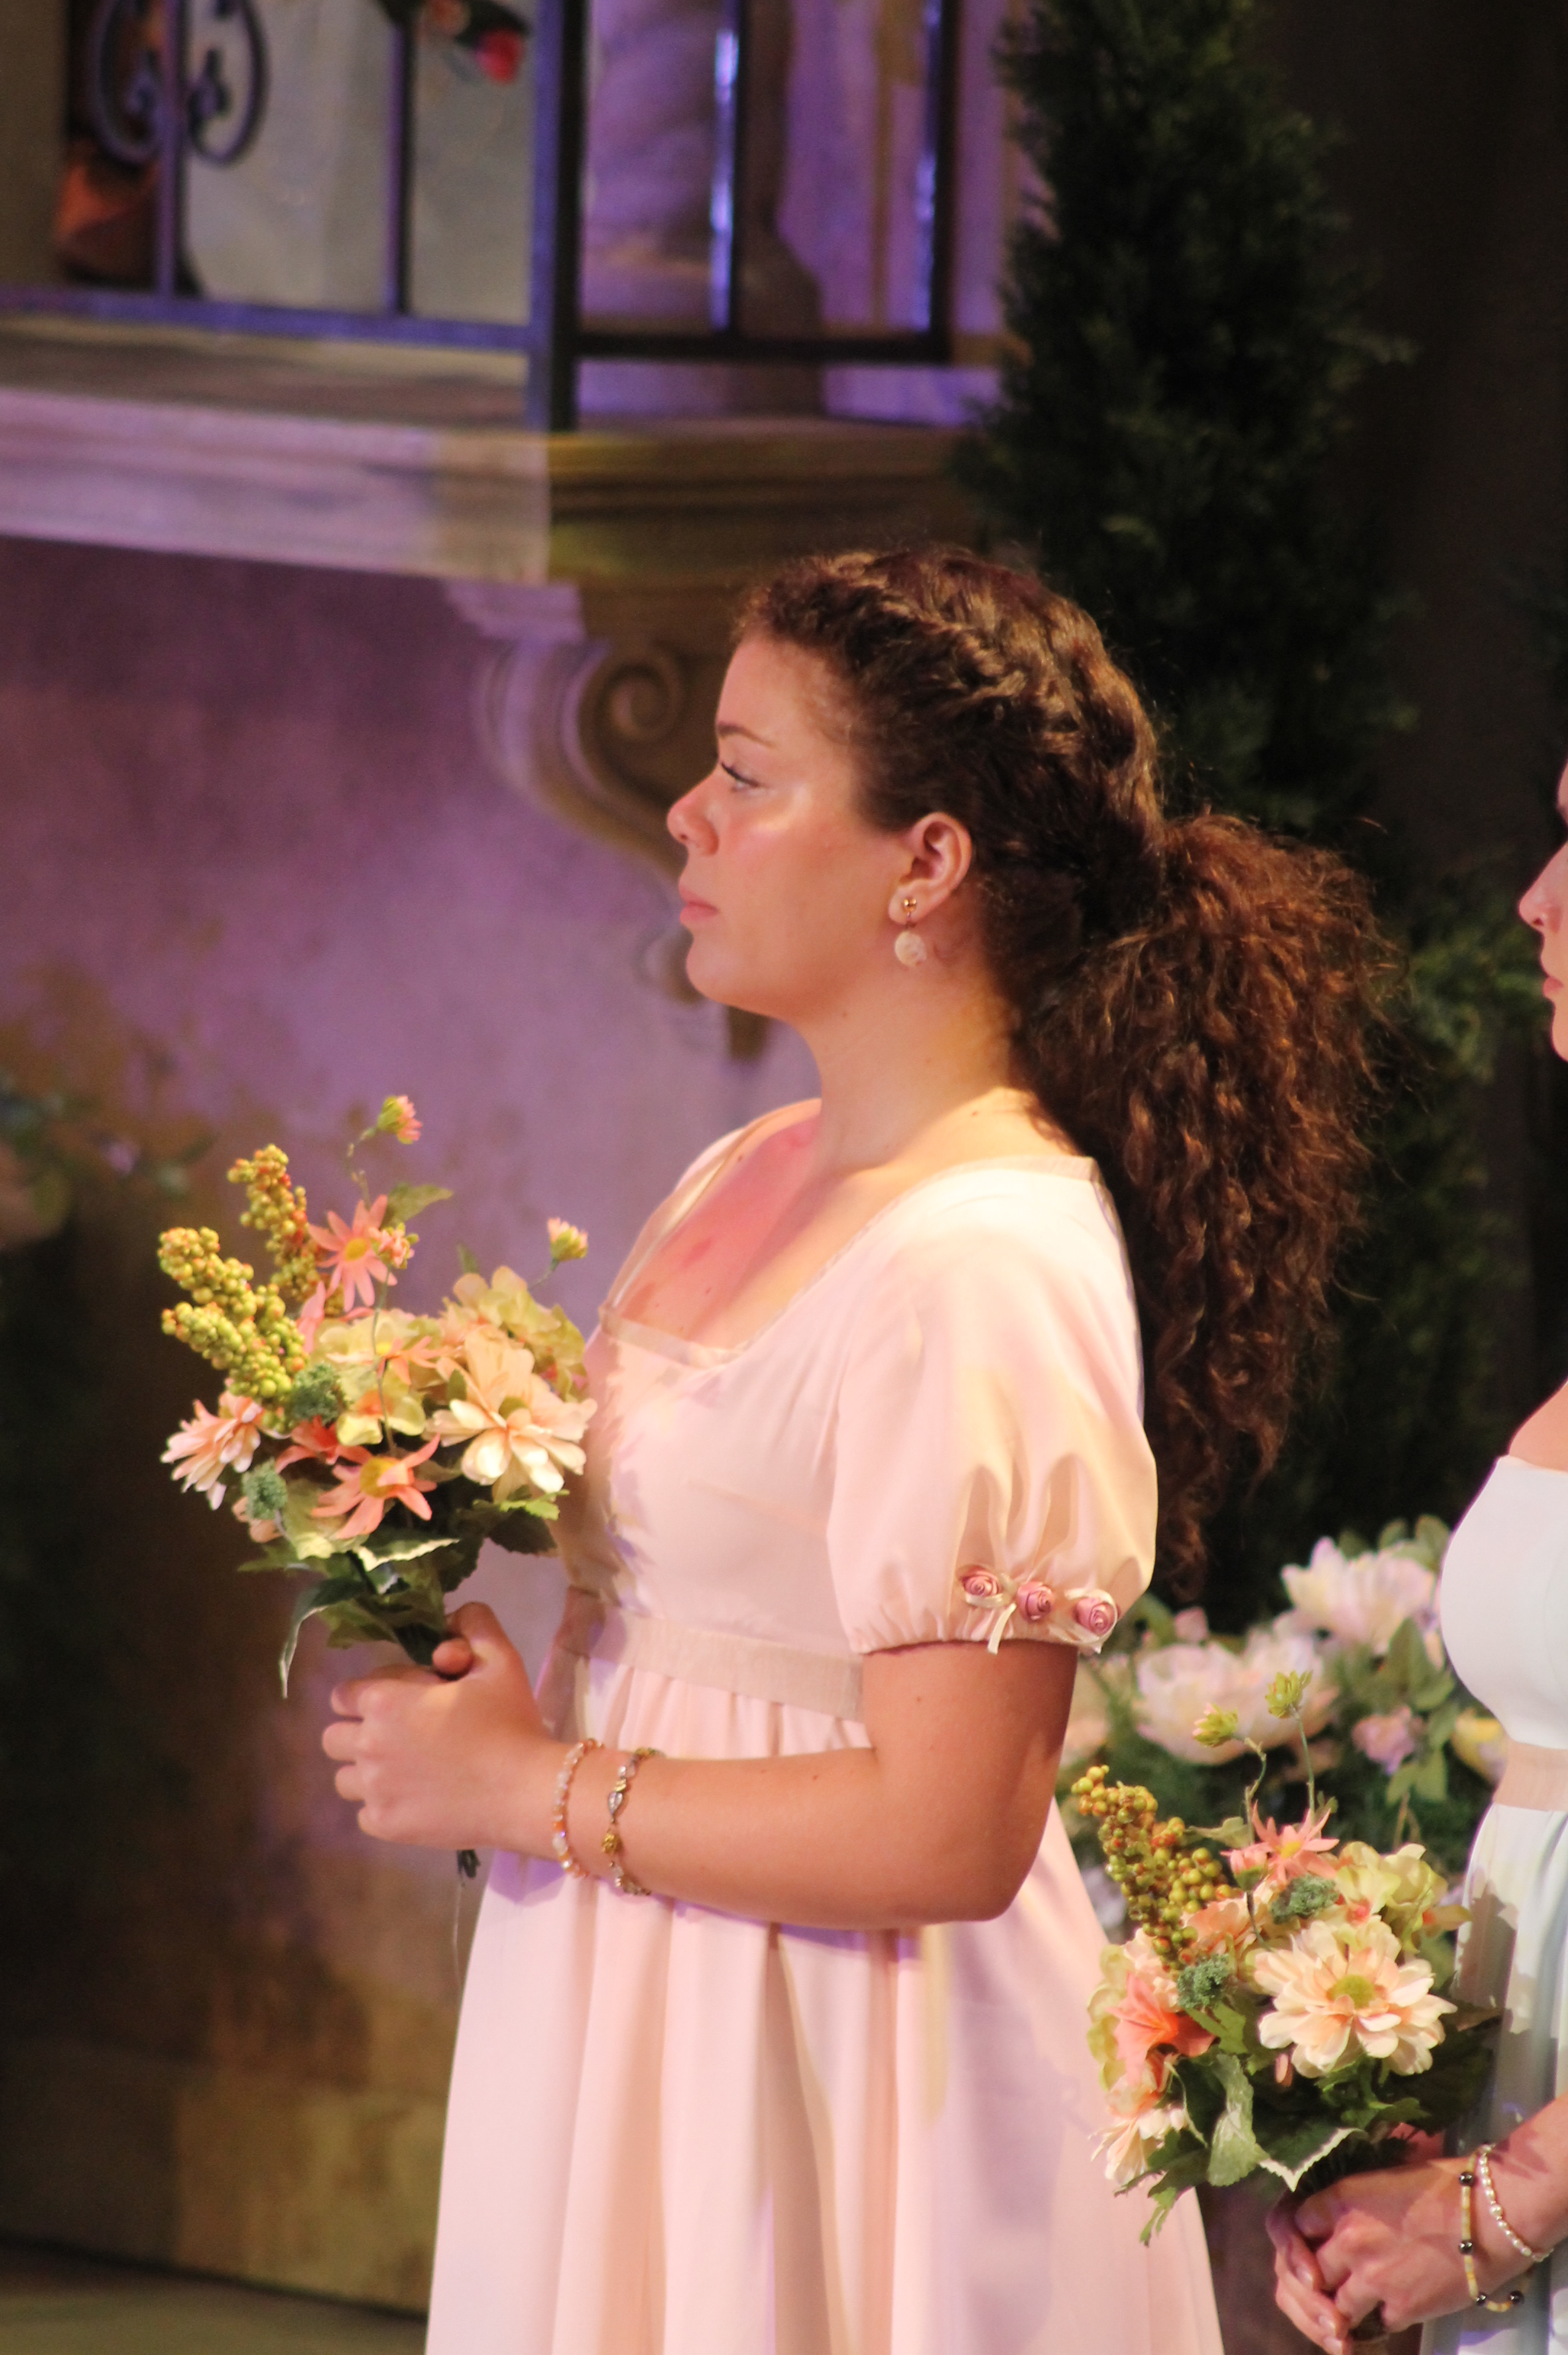 Ursula in Much Ado About Nothing, Directed by George Judy